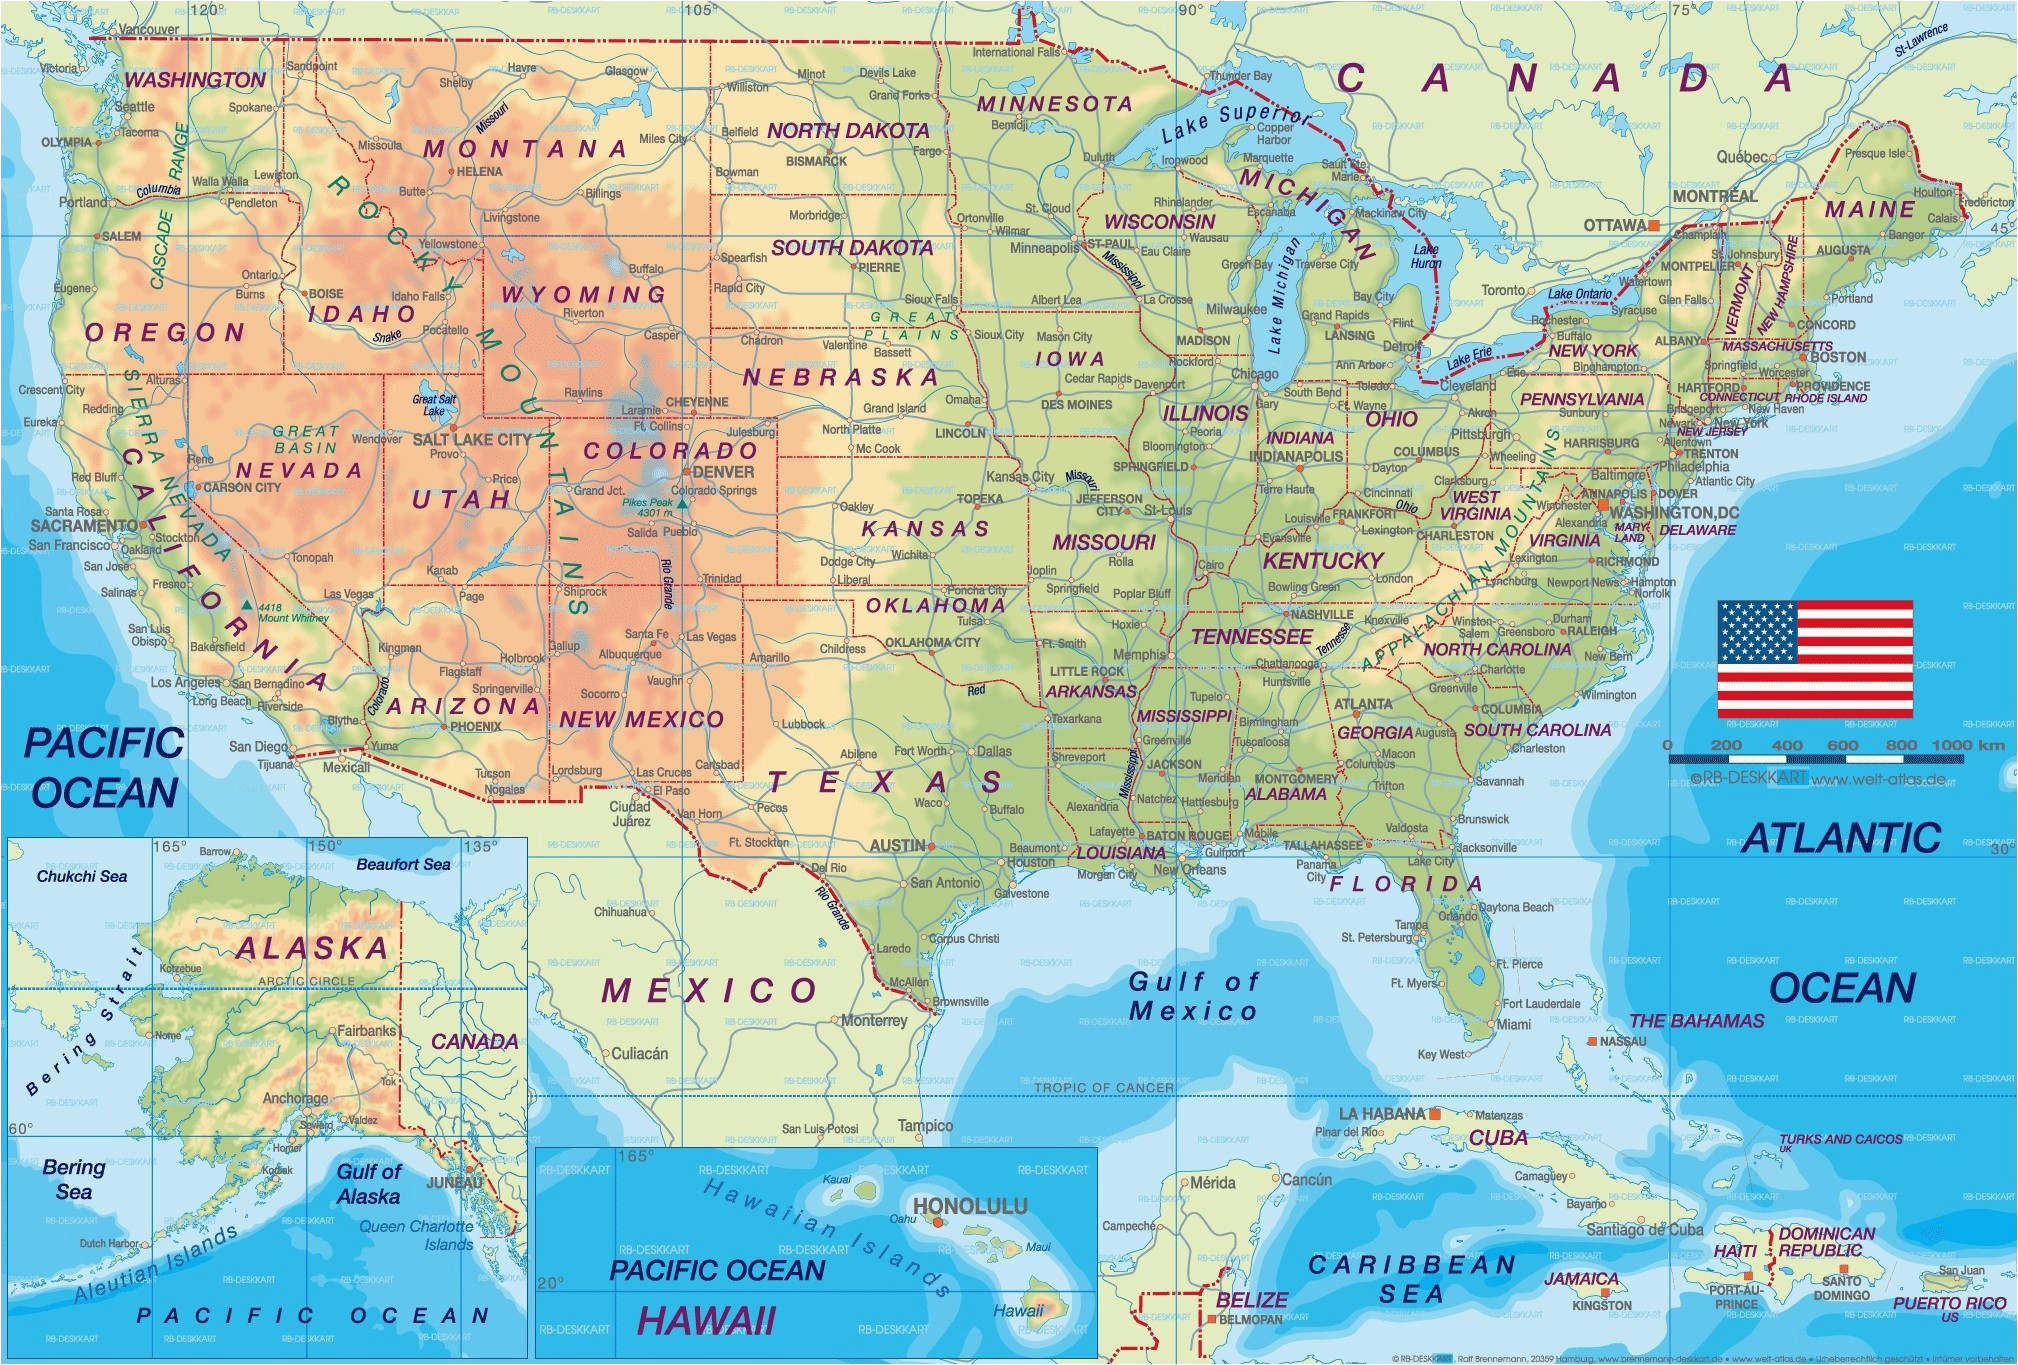 Map Of Canada And Europe.Map Of Georgia Europe Printable Map Georgia Inspirational Map North